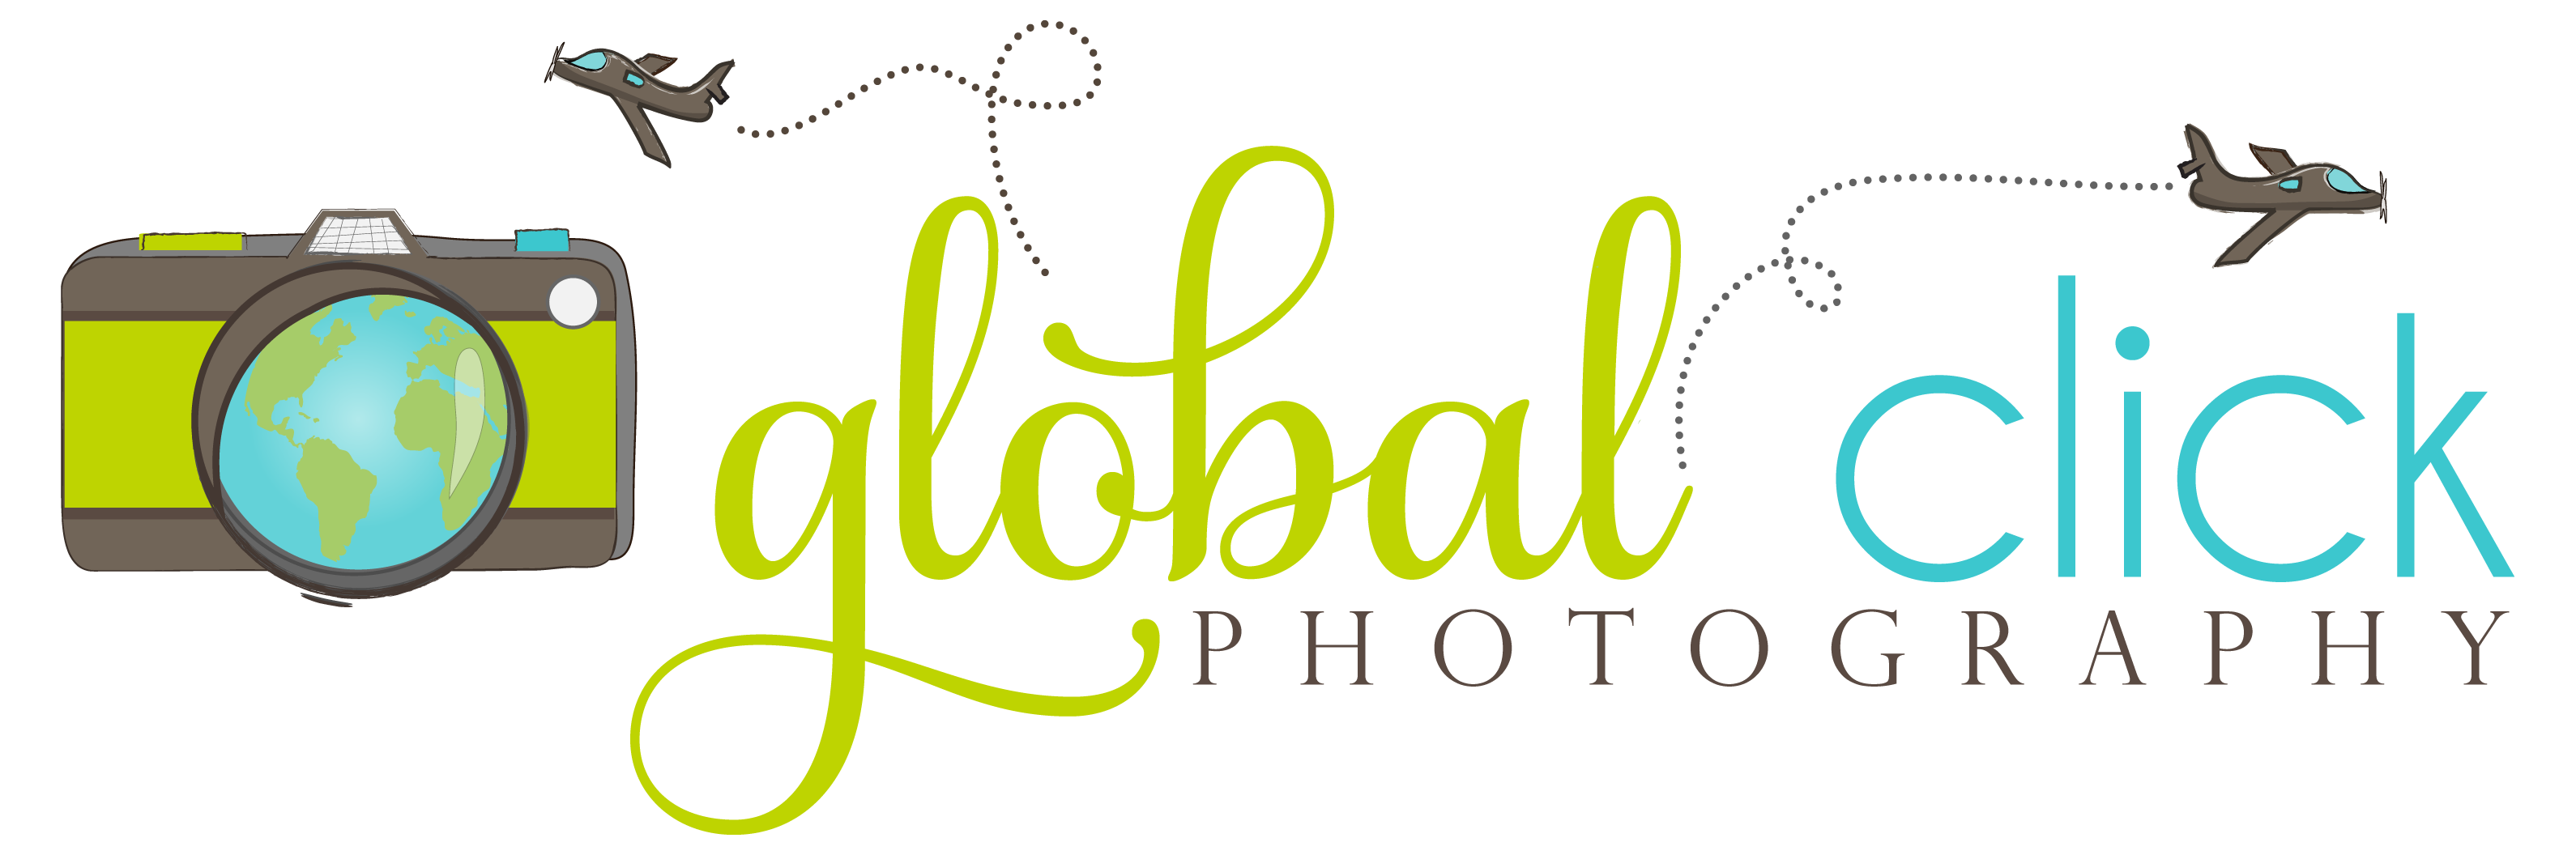 Global Click Photography - Road Race Photographer